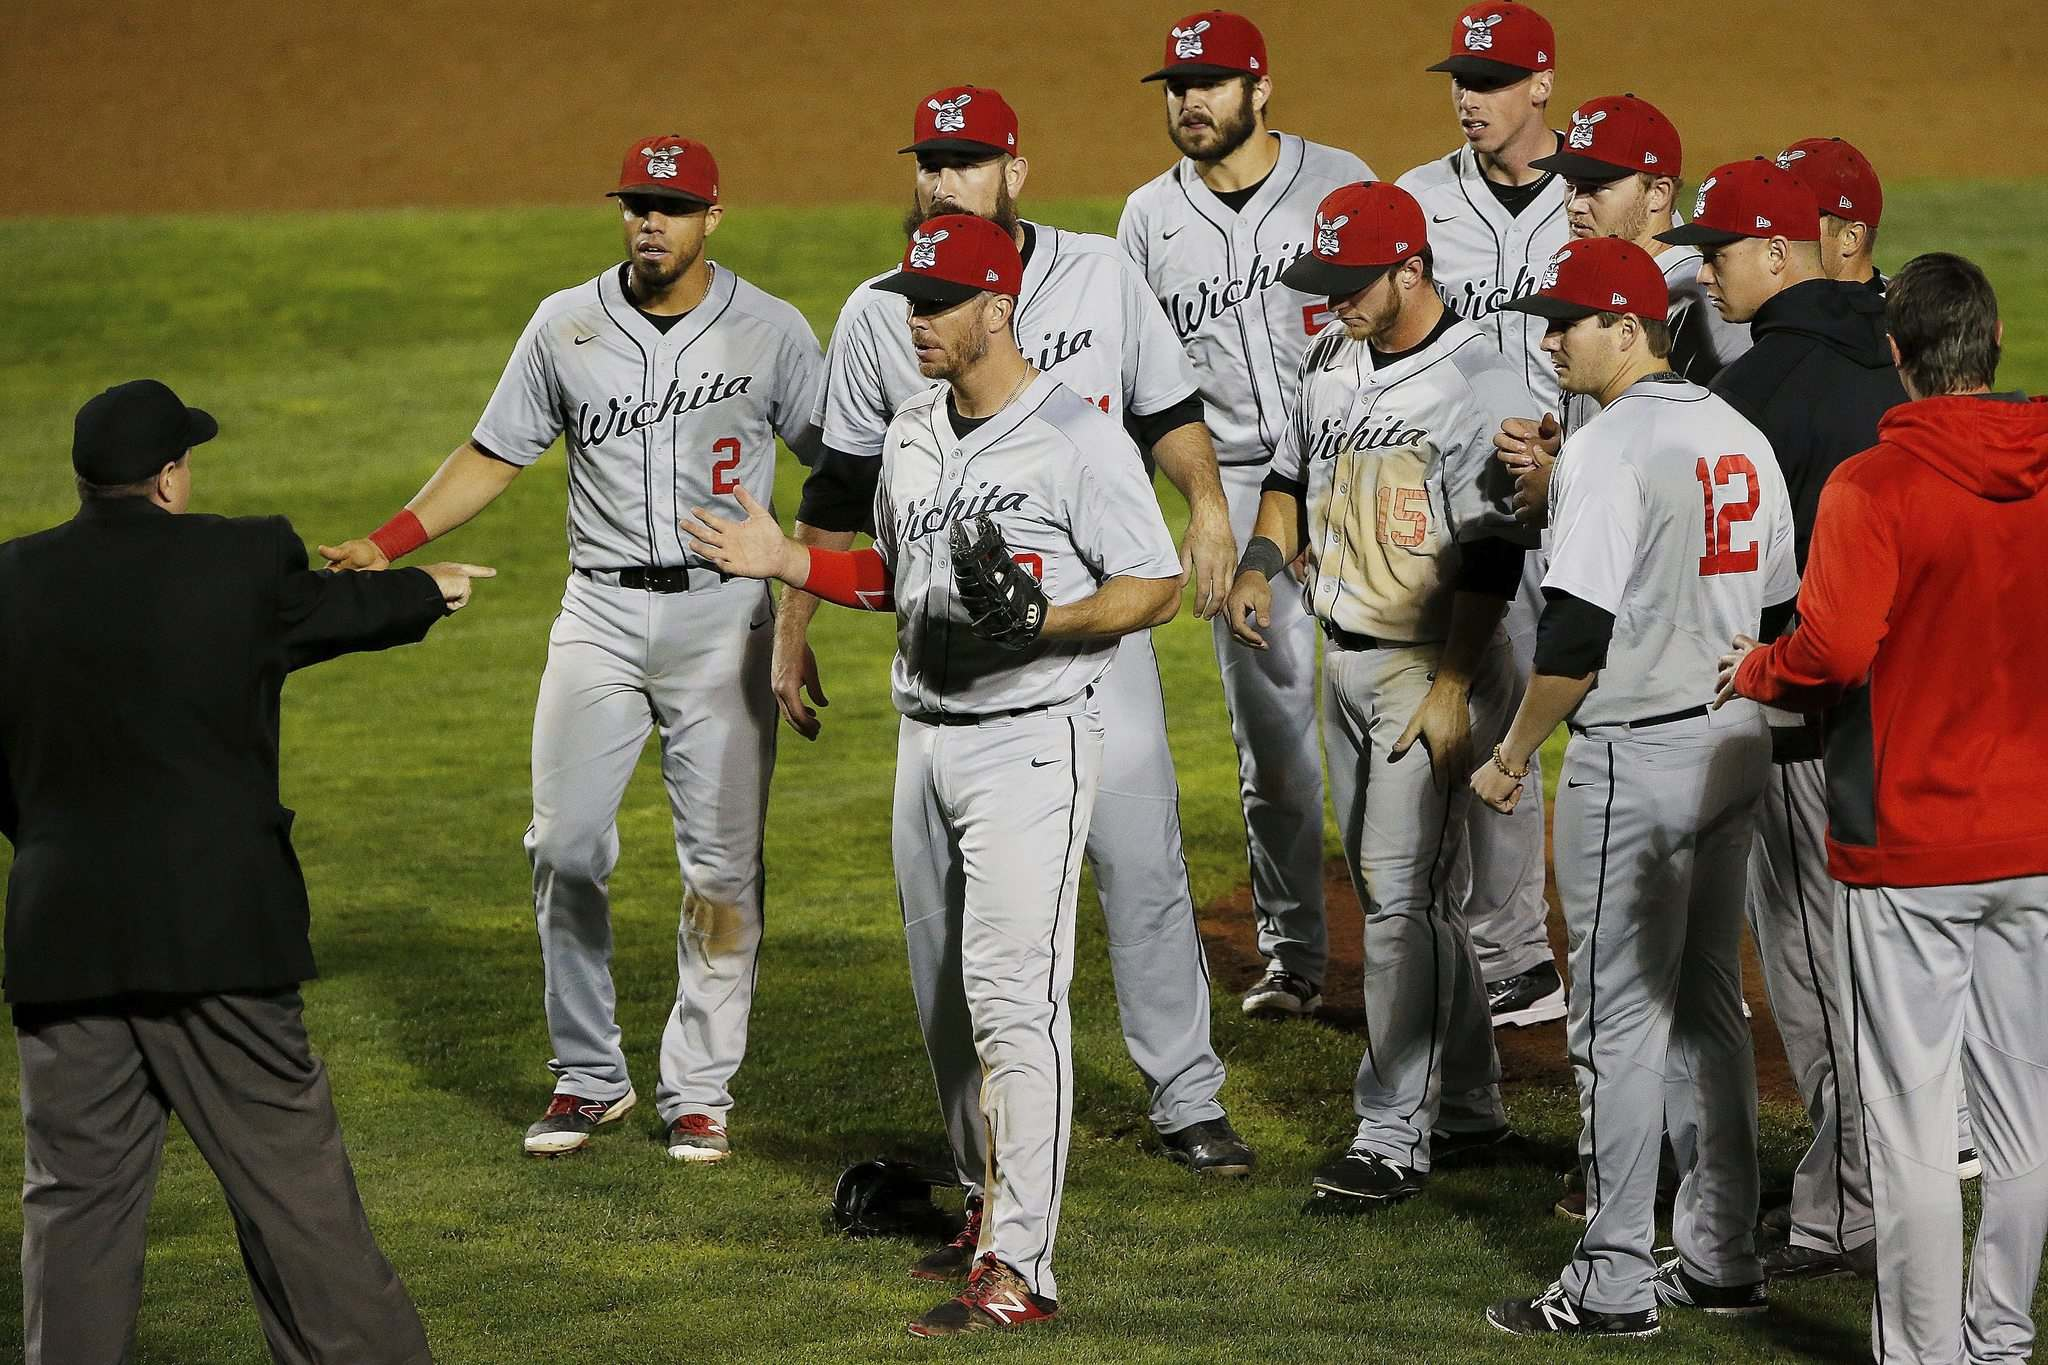 JOHN WOODS / WINNIPEG FREE PRESS</p><p>Wichita thought they won the title on Monday, but Wingnuts players were shocked after a balk overturned celebrations. The Goldeyes capitalized on their opportunity and won Game 4 in 17 innings &mdash; the longest in league history.</p>